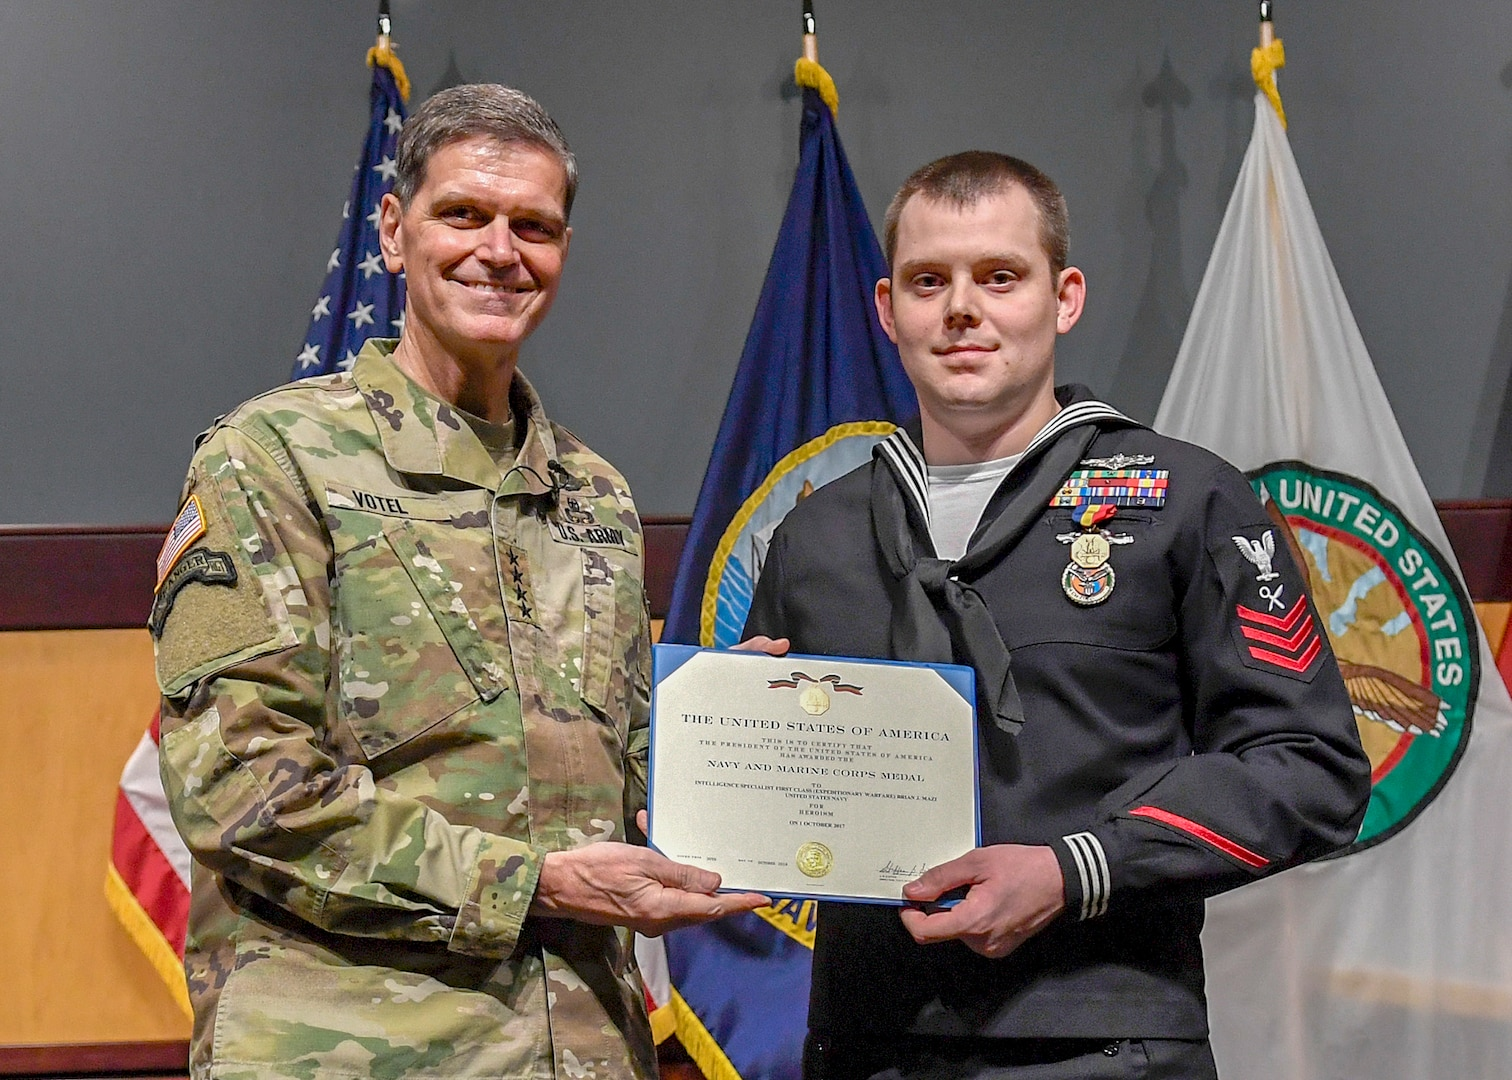 U.S. Army Gen. Joseph Votel, U.S. Central Command commander (left), presents U.S. Navy Petty Officer 1st Class Brian Mazi, USCENTCOM intelligence specialist, with the Navy-Marine Corps Medal on Dec. 18. Mazi was recognized for his heroism during the October 2017 tragedy that left 58 dead and more than 500 wounded at a country music festival in Las Vegas. The award falls between the Distinguished Flying Cross and the Bronze Star in order of merit.